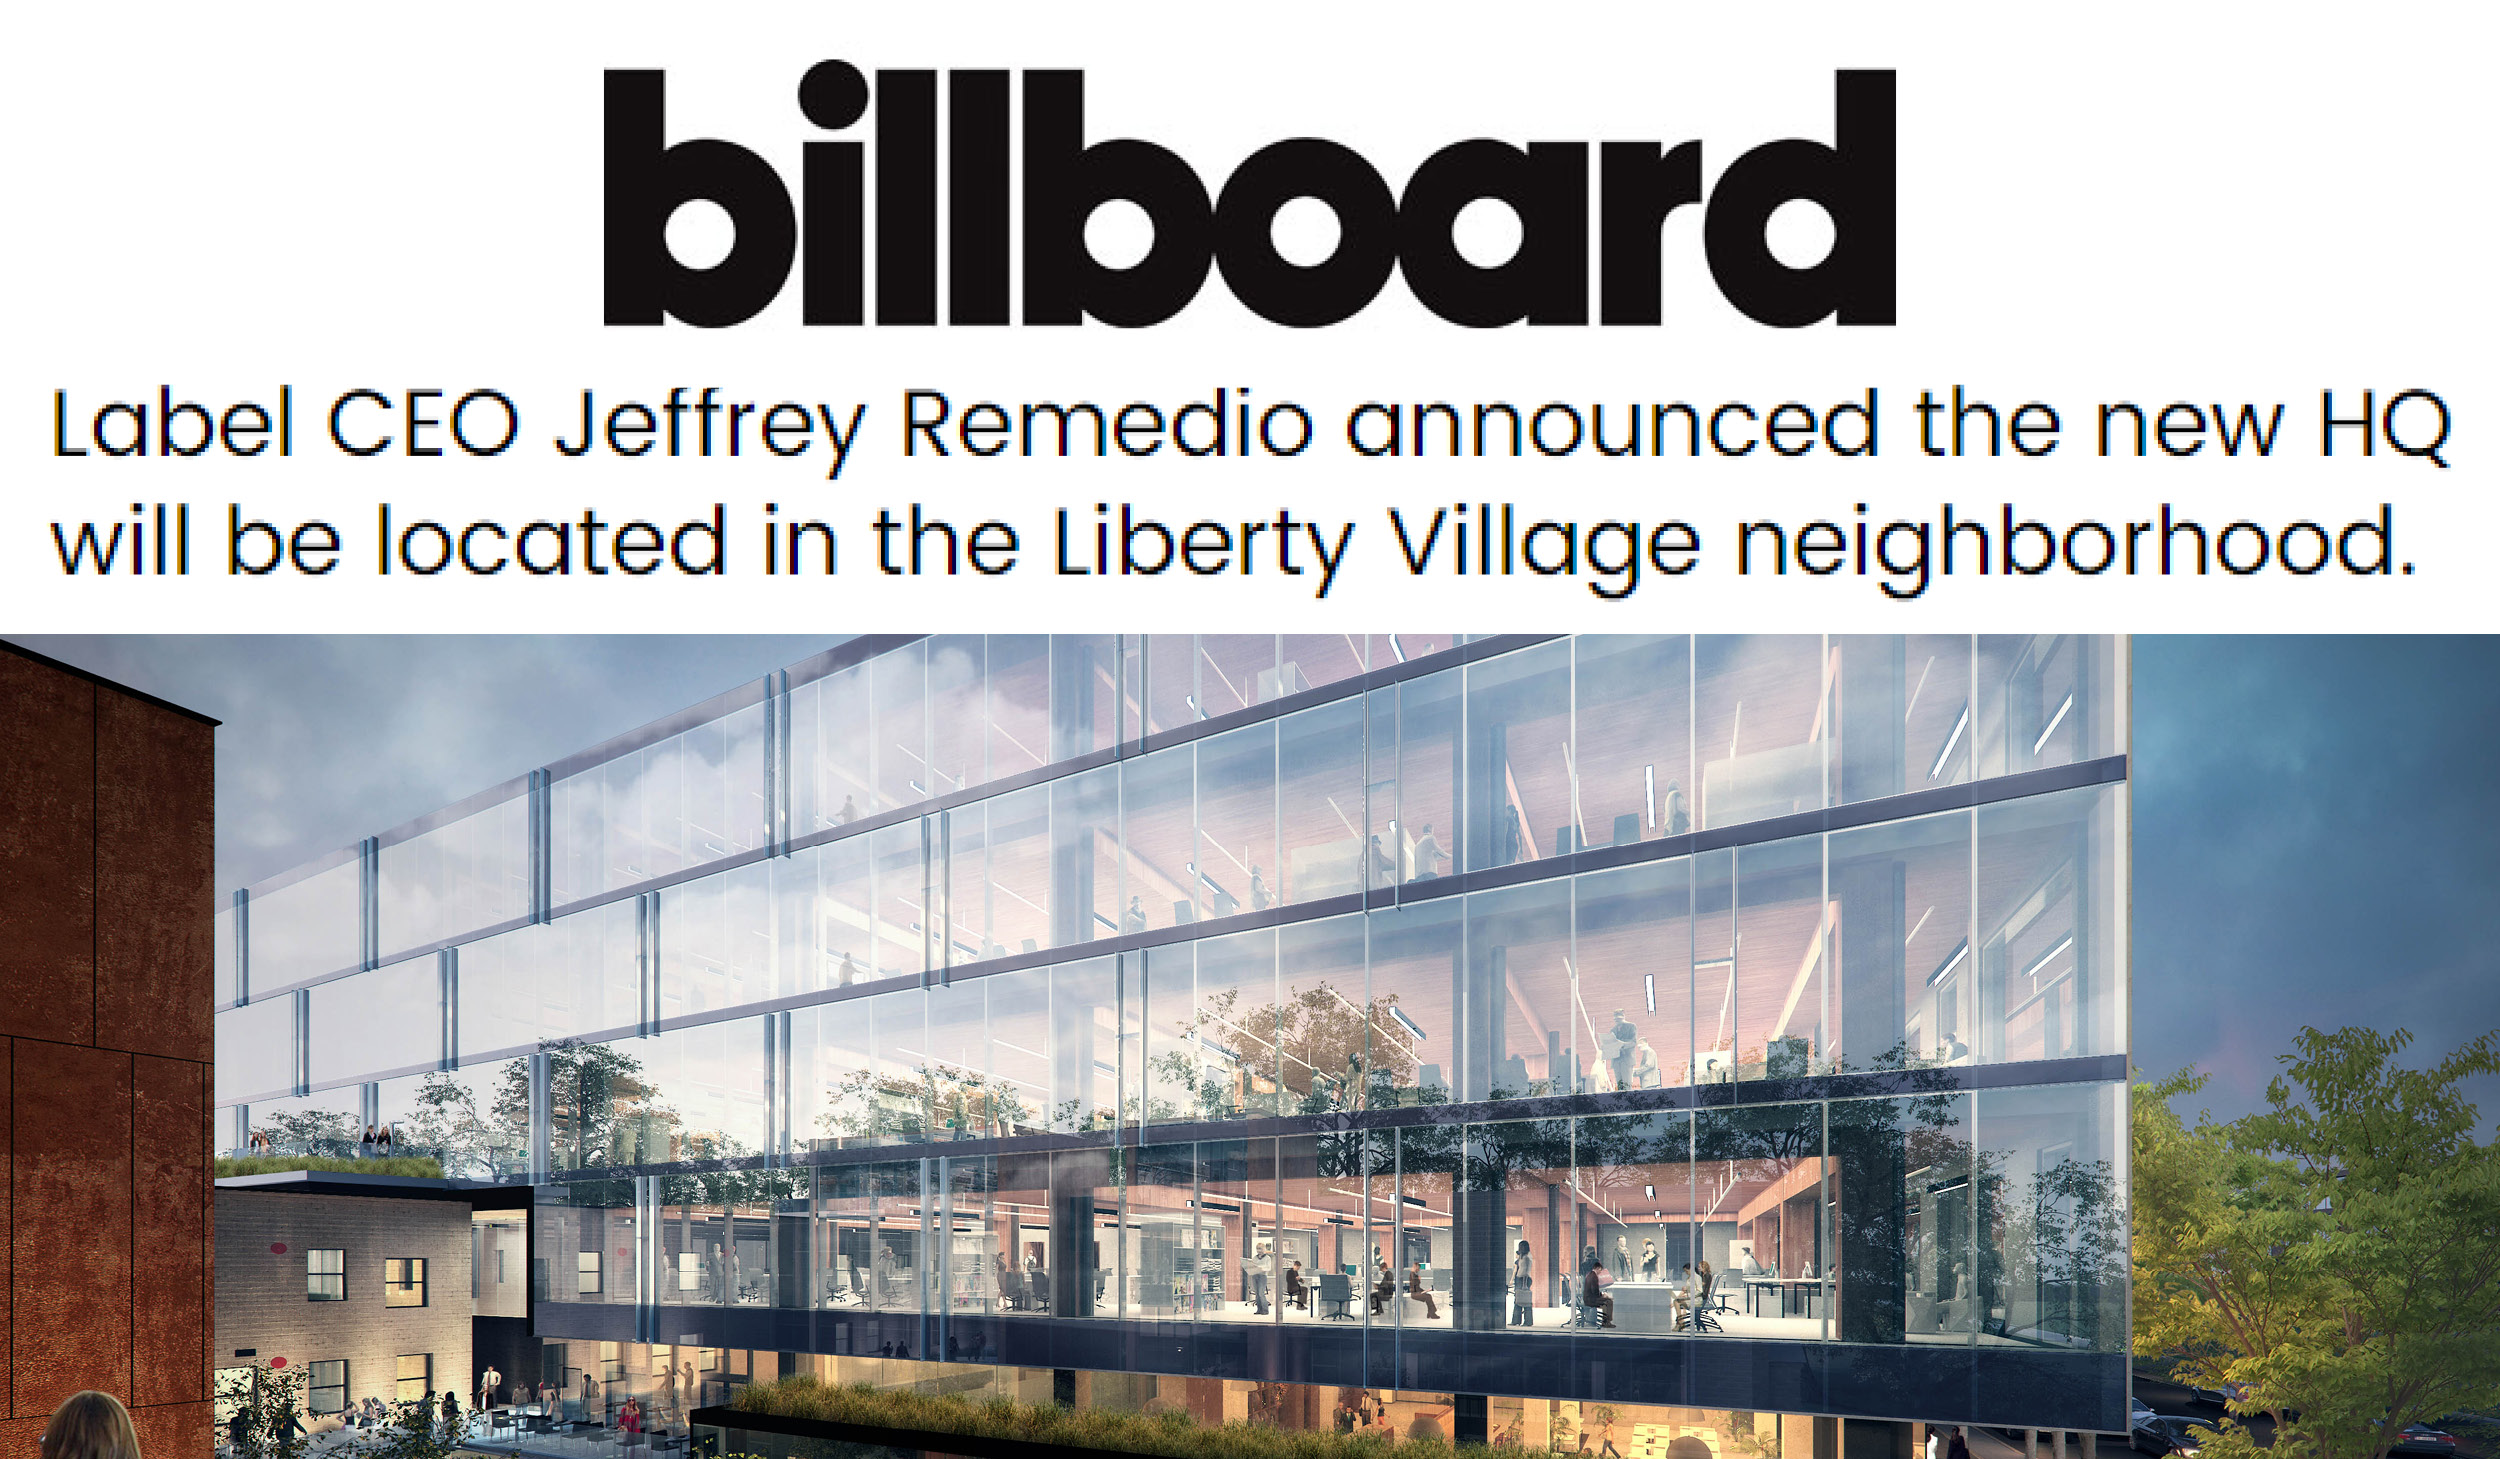 """the Billboard logo and headline """"Label CEO Jeffrey Remedio announced the new HQ will be located in the Liberty Village neighbourhood"""" above a rendering of 80 Atlantic"""